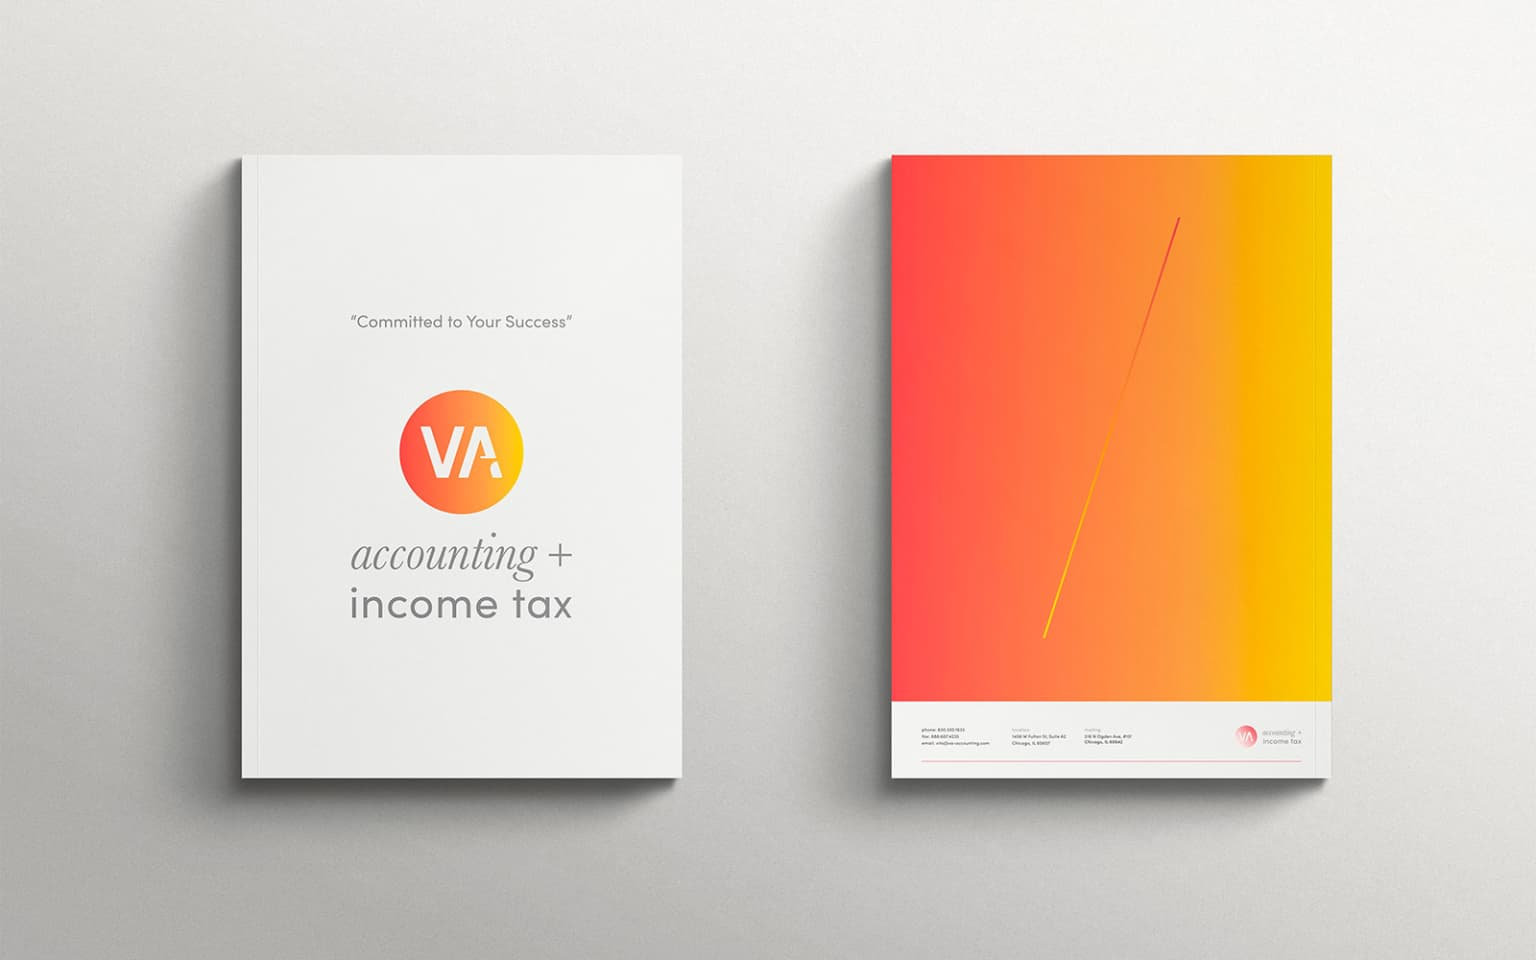 VA + Accounting + Income Tax brand system